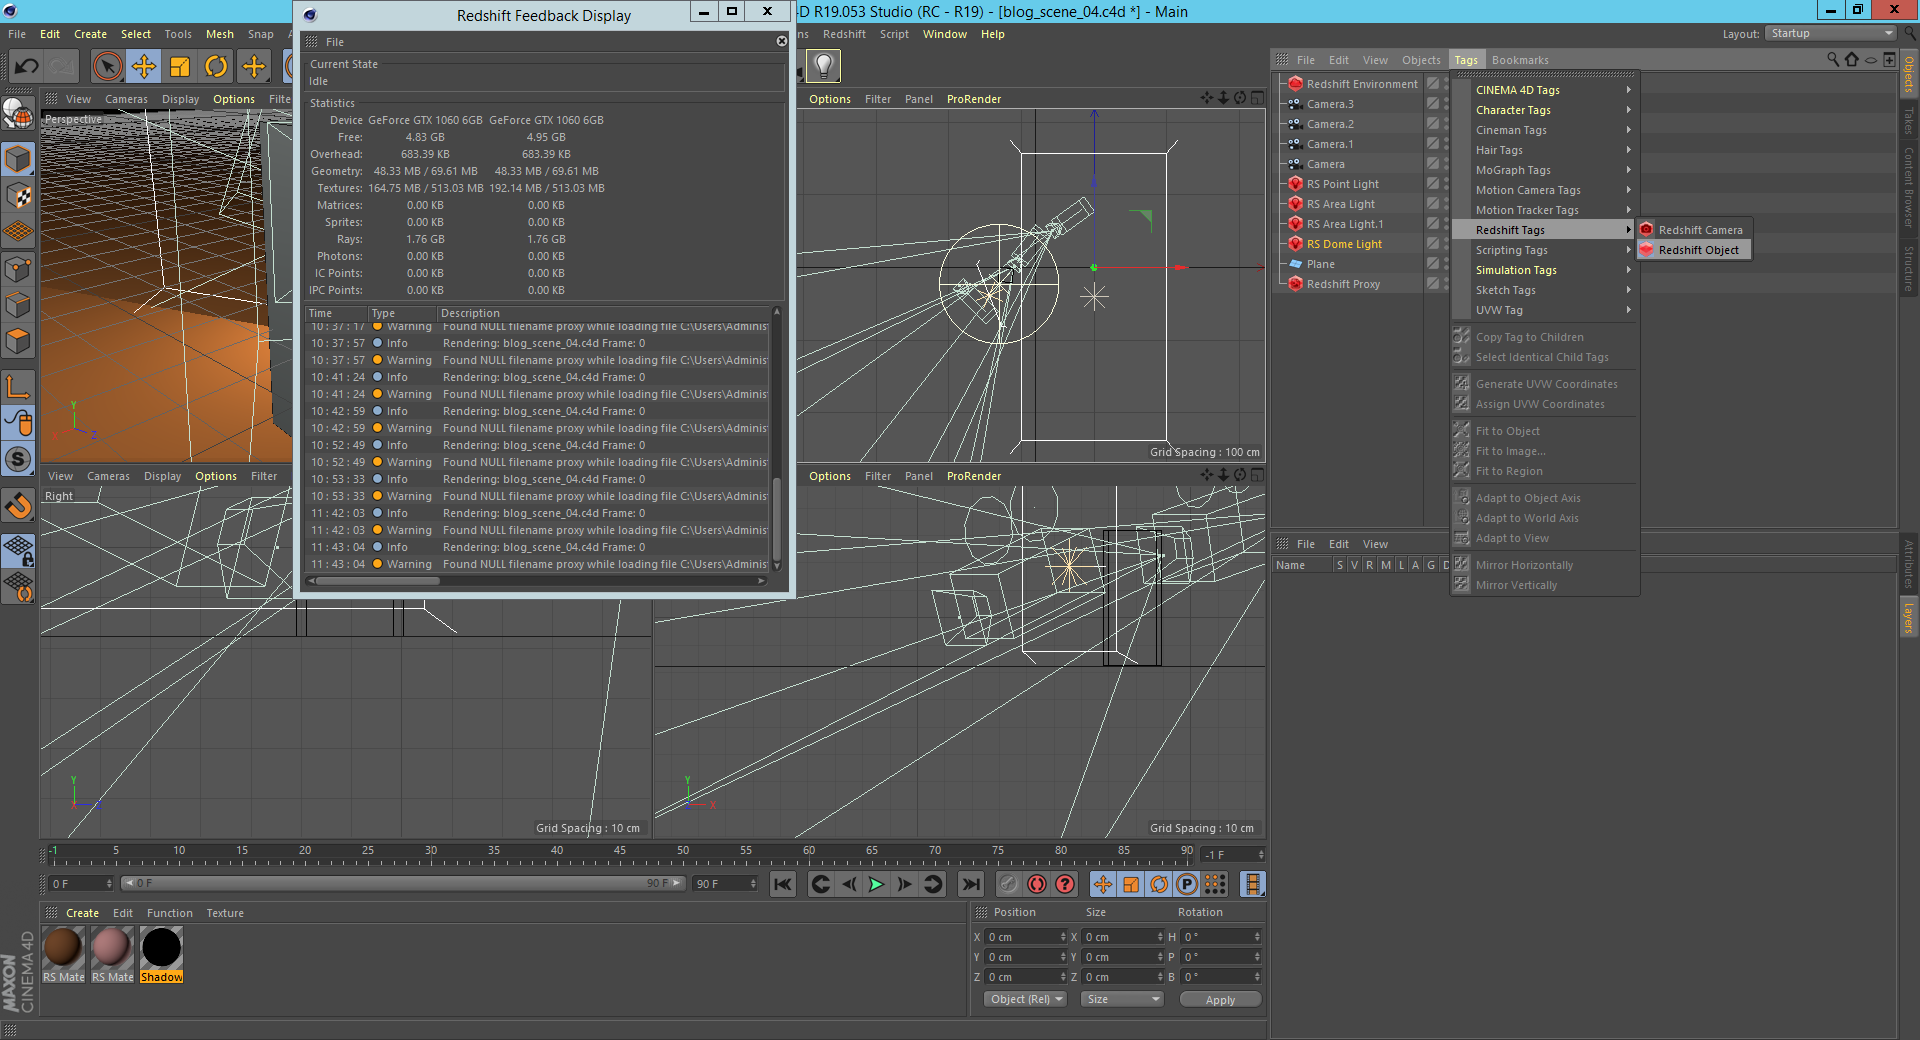 Screenshot of Redshift tag and redshift object selection